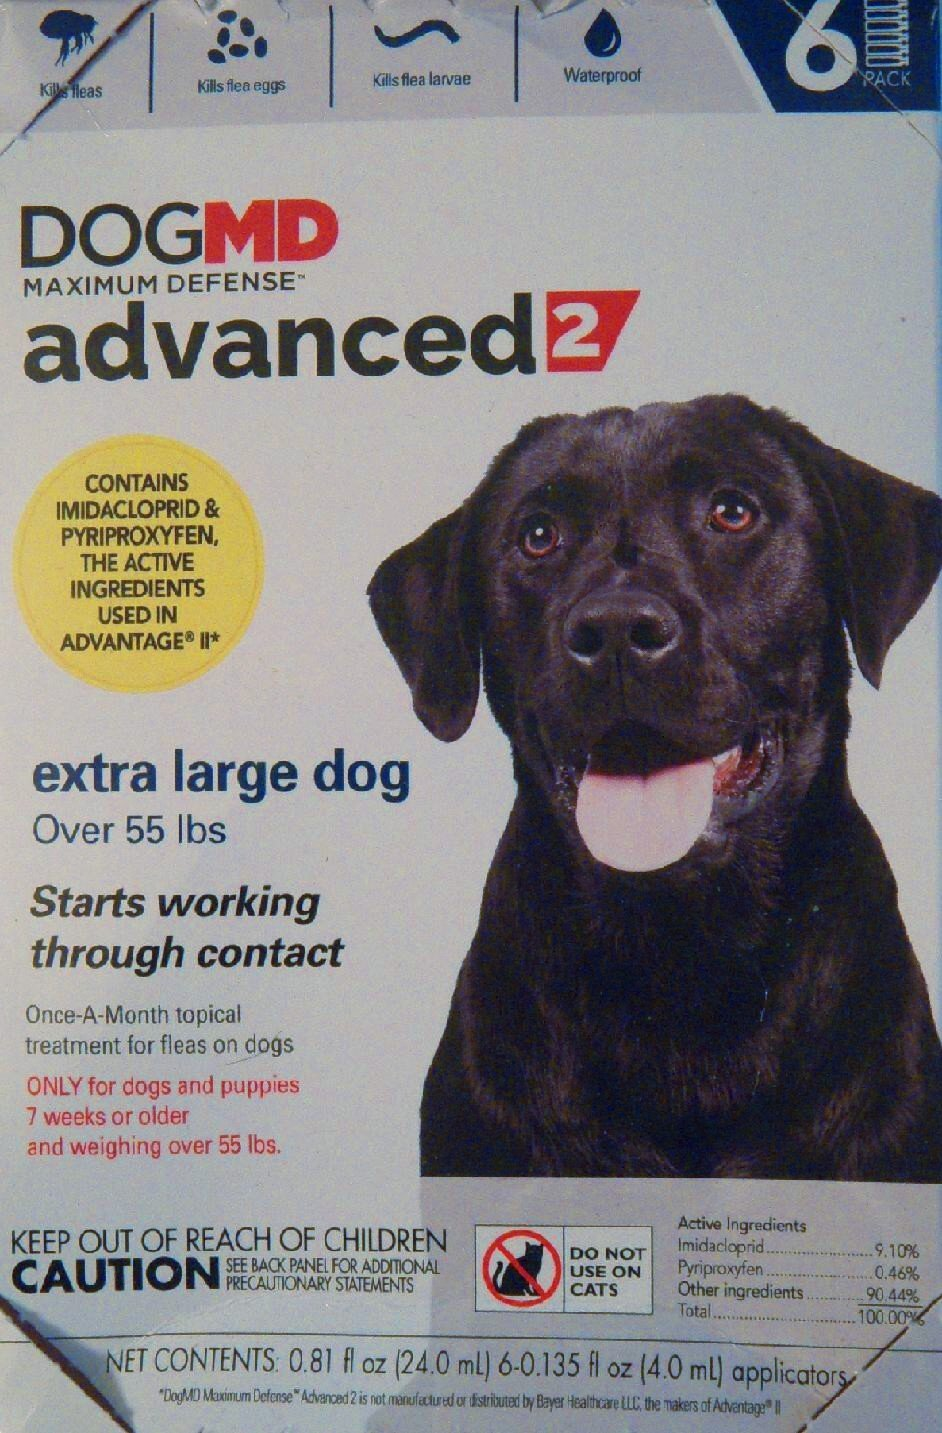 Dog MD, Maximum Defense Over 55 lbs Advance 2 Flea Medicine